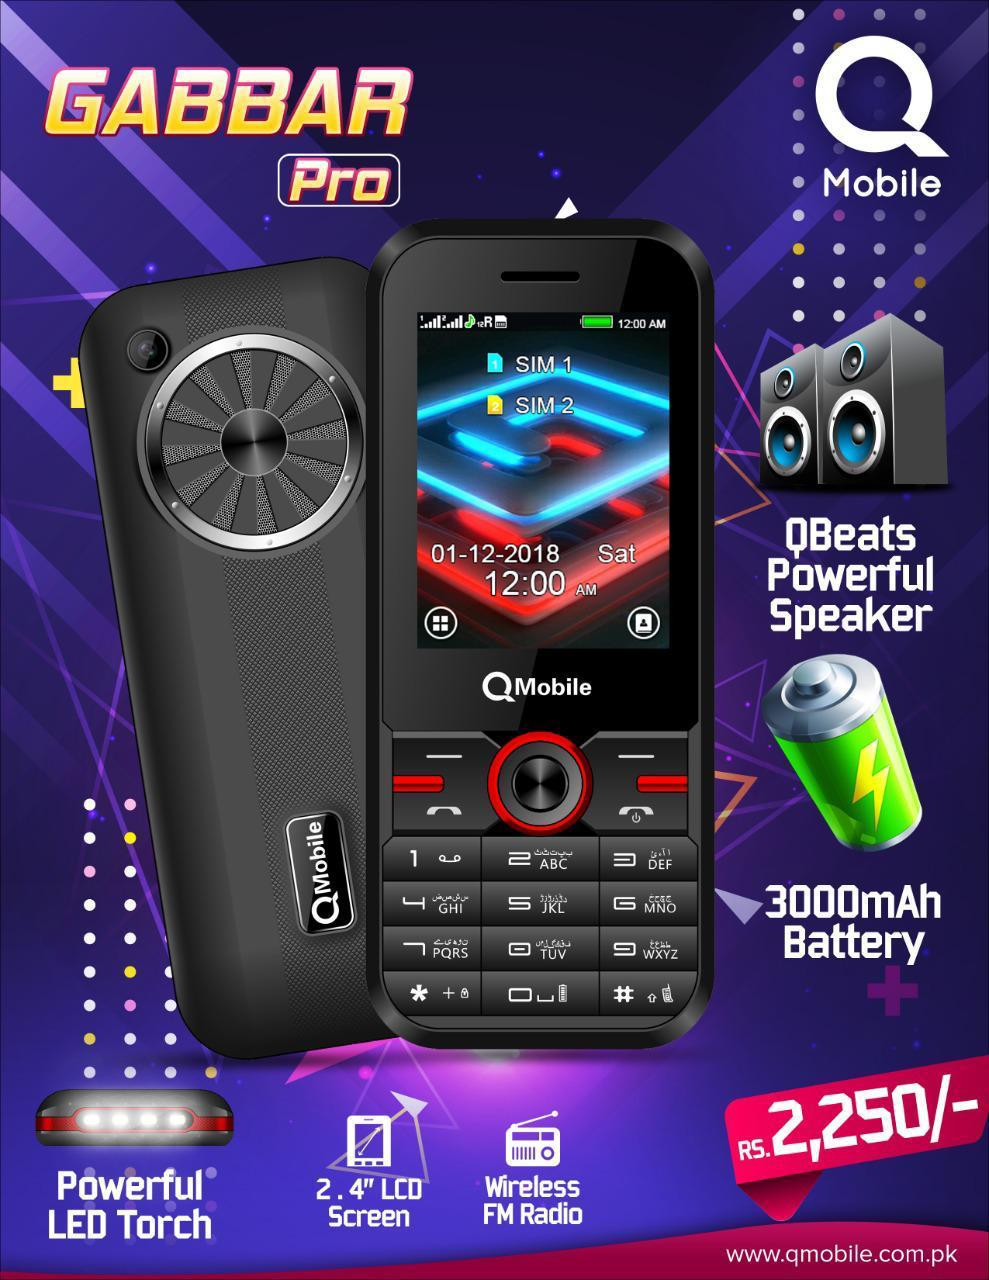 Qmobile Gabbar Pro Price and Specs